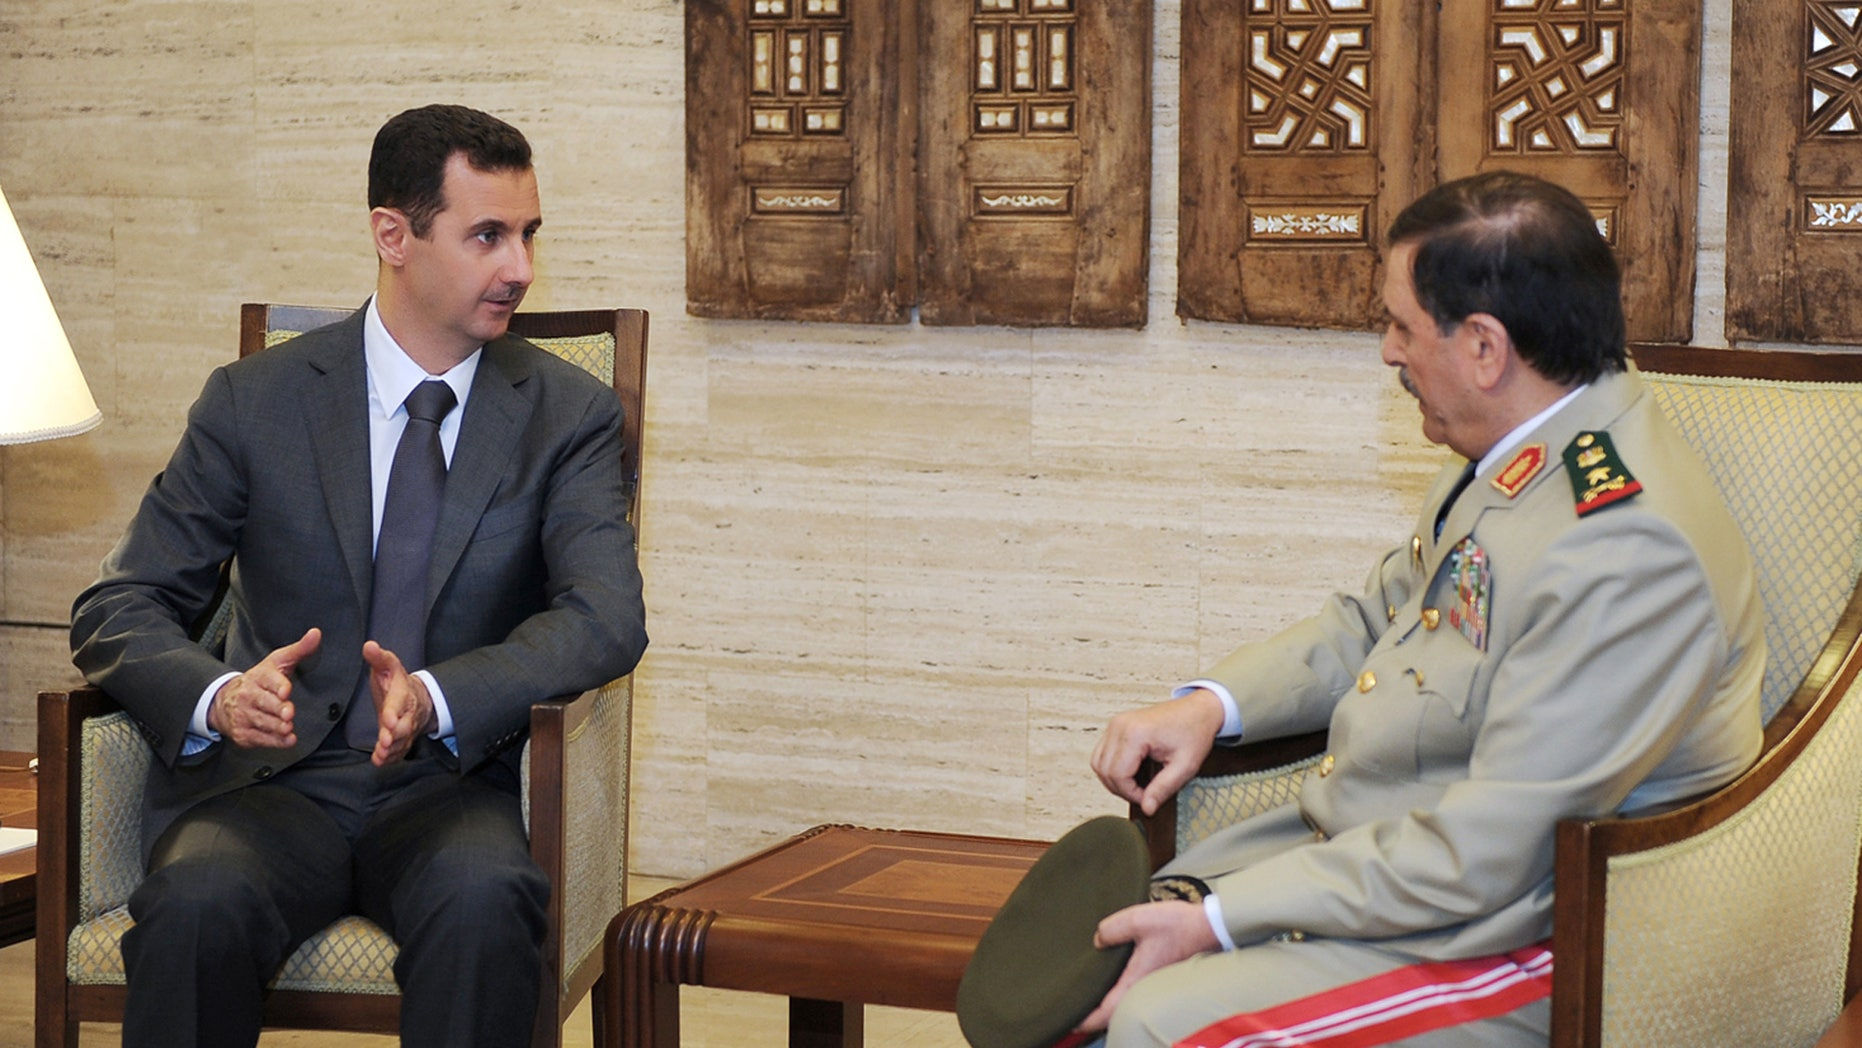 July 19, 2012: In this photo released by the Syrian official news agency SANA, Syrian President Bashar Assad, left, meets with Fahd Jassem al-Freij, Syria's new Defense Minister, in Damascus, Syria.